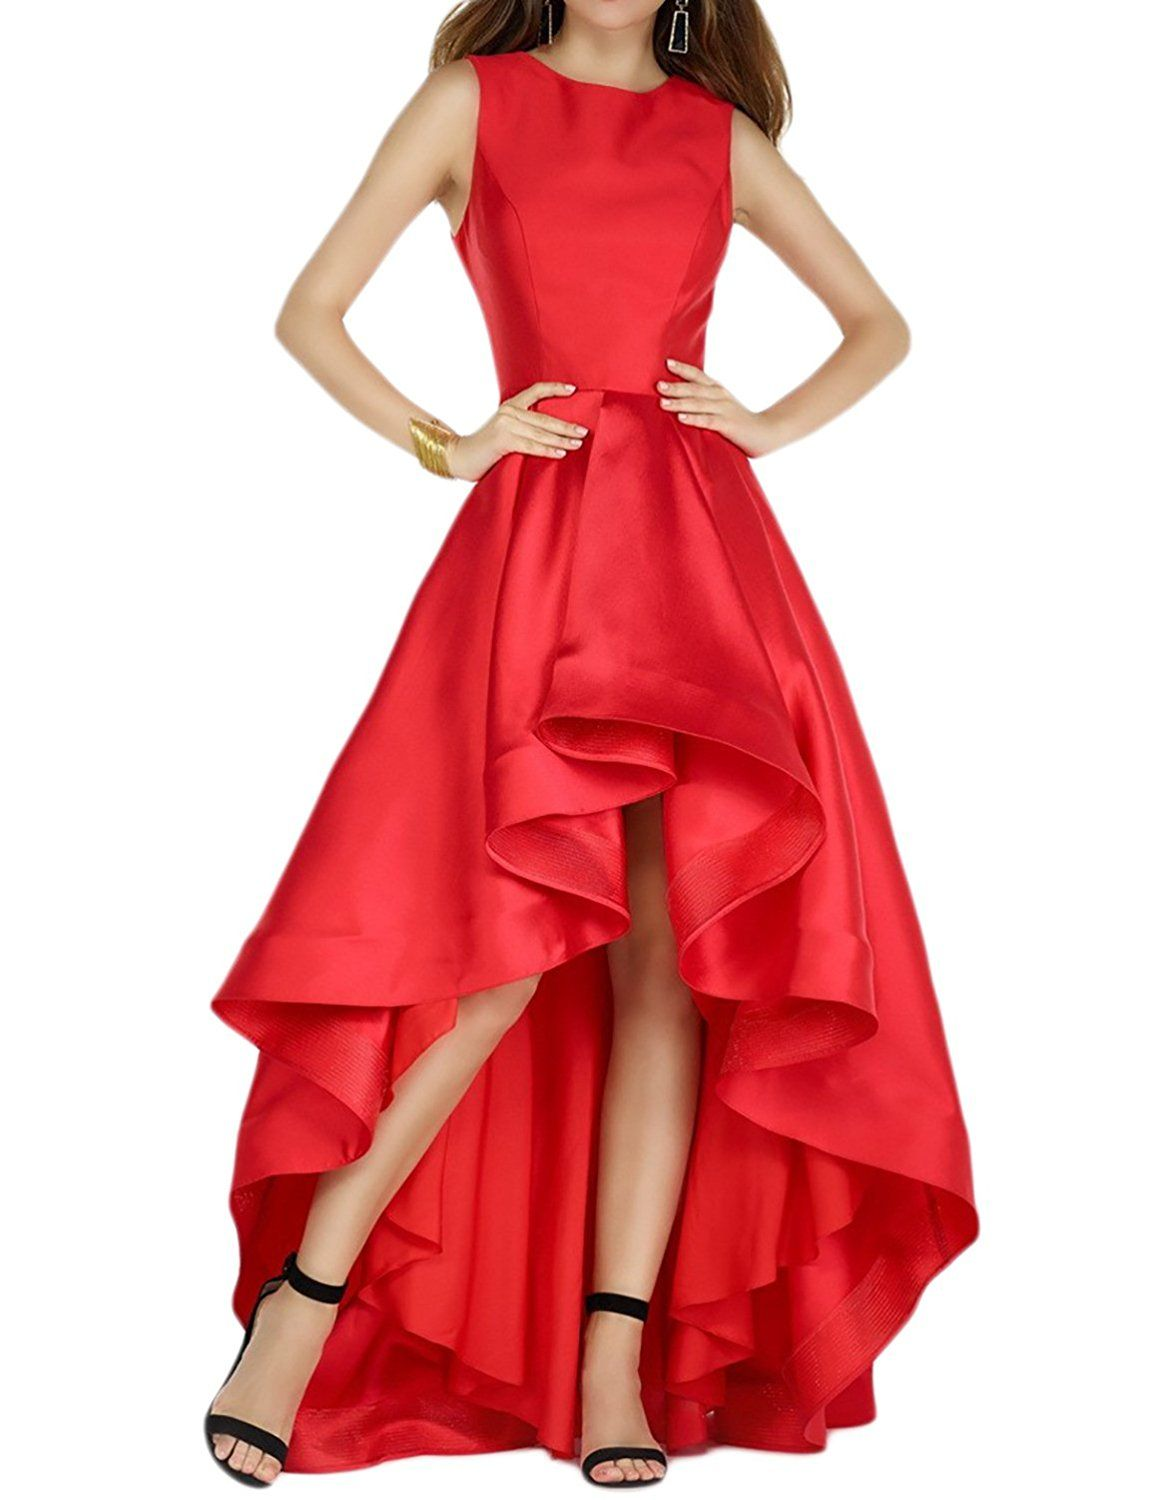 Fnina womenus elegant high low satin prom party dresses evening